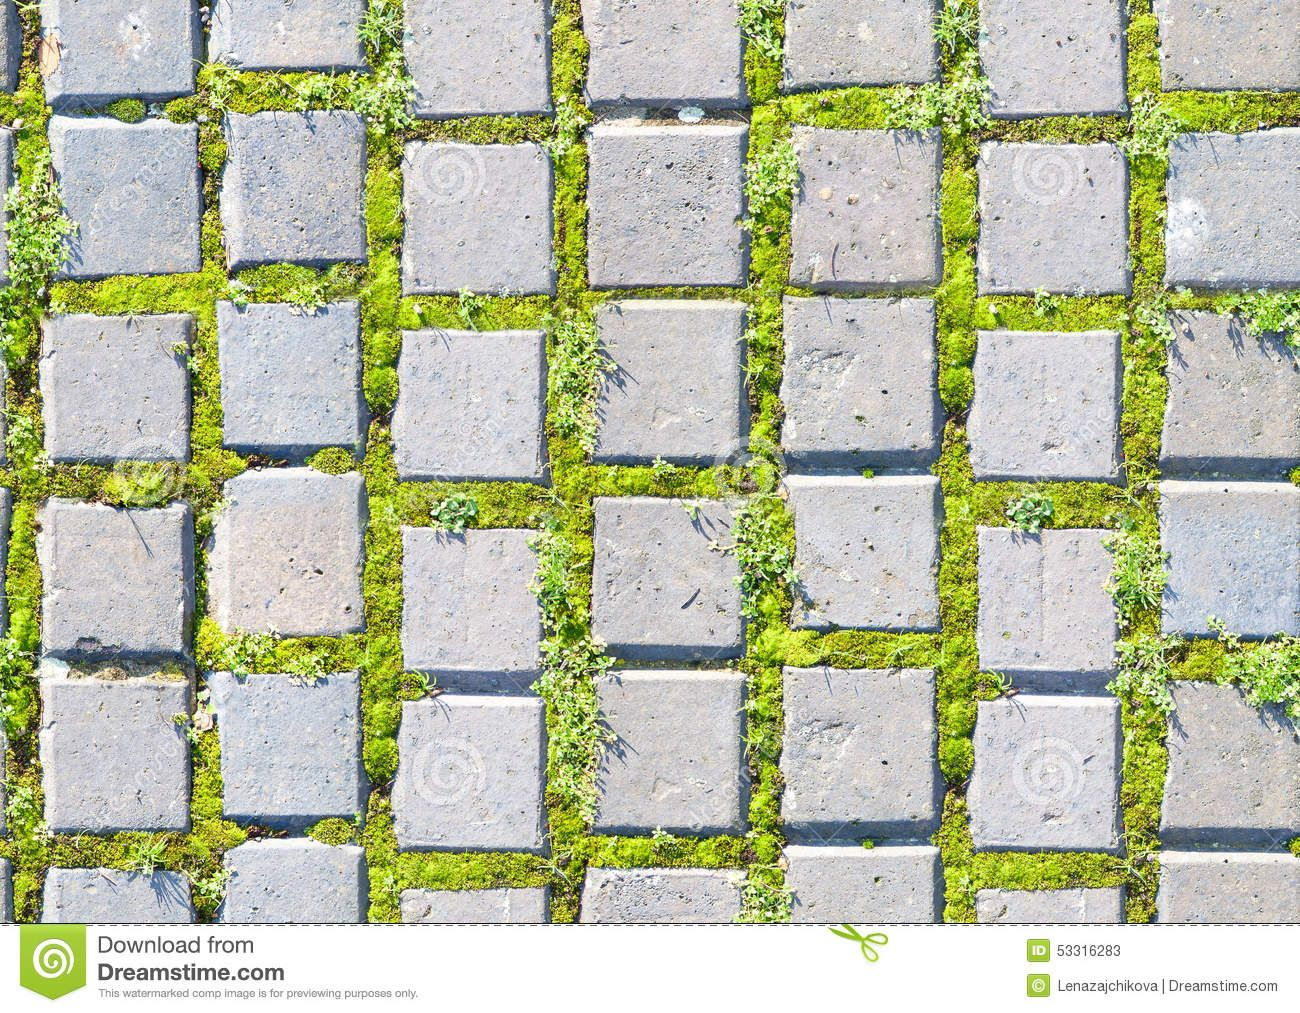 K T Qu H Nh Nh Cho Top View Grass And Stone Texture